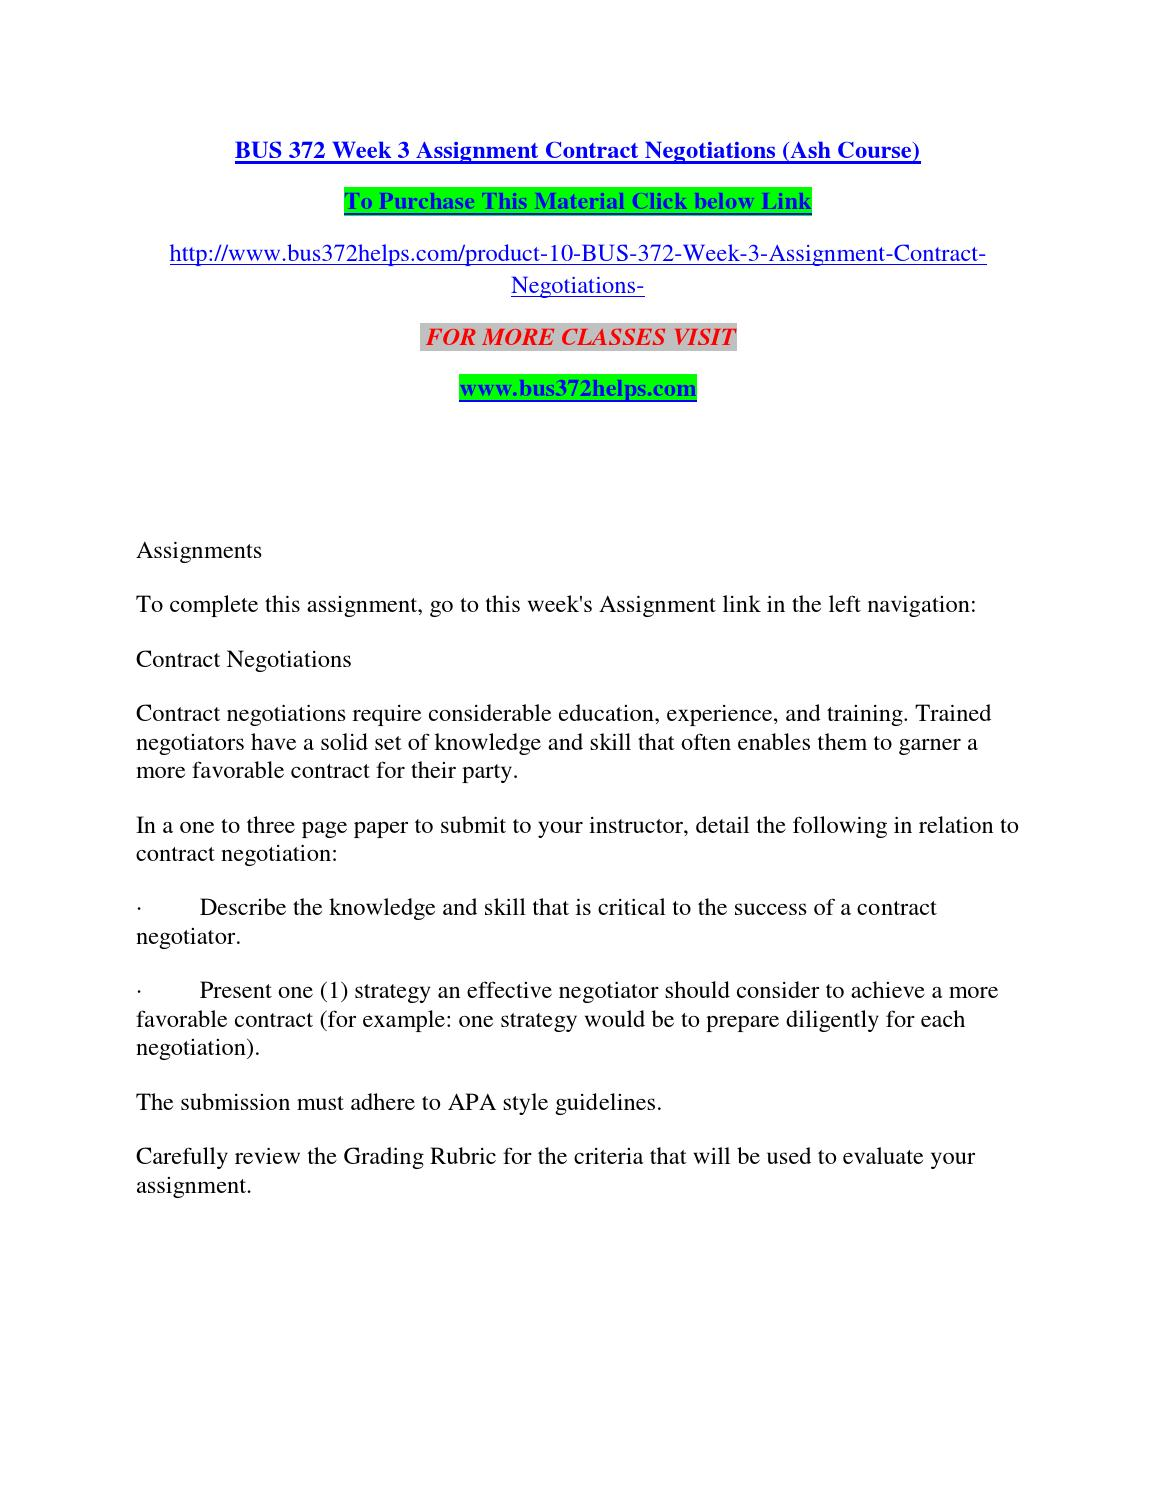 Bus 372 week 3 assignment contract negotiations (ash course) by ...